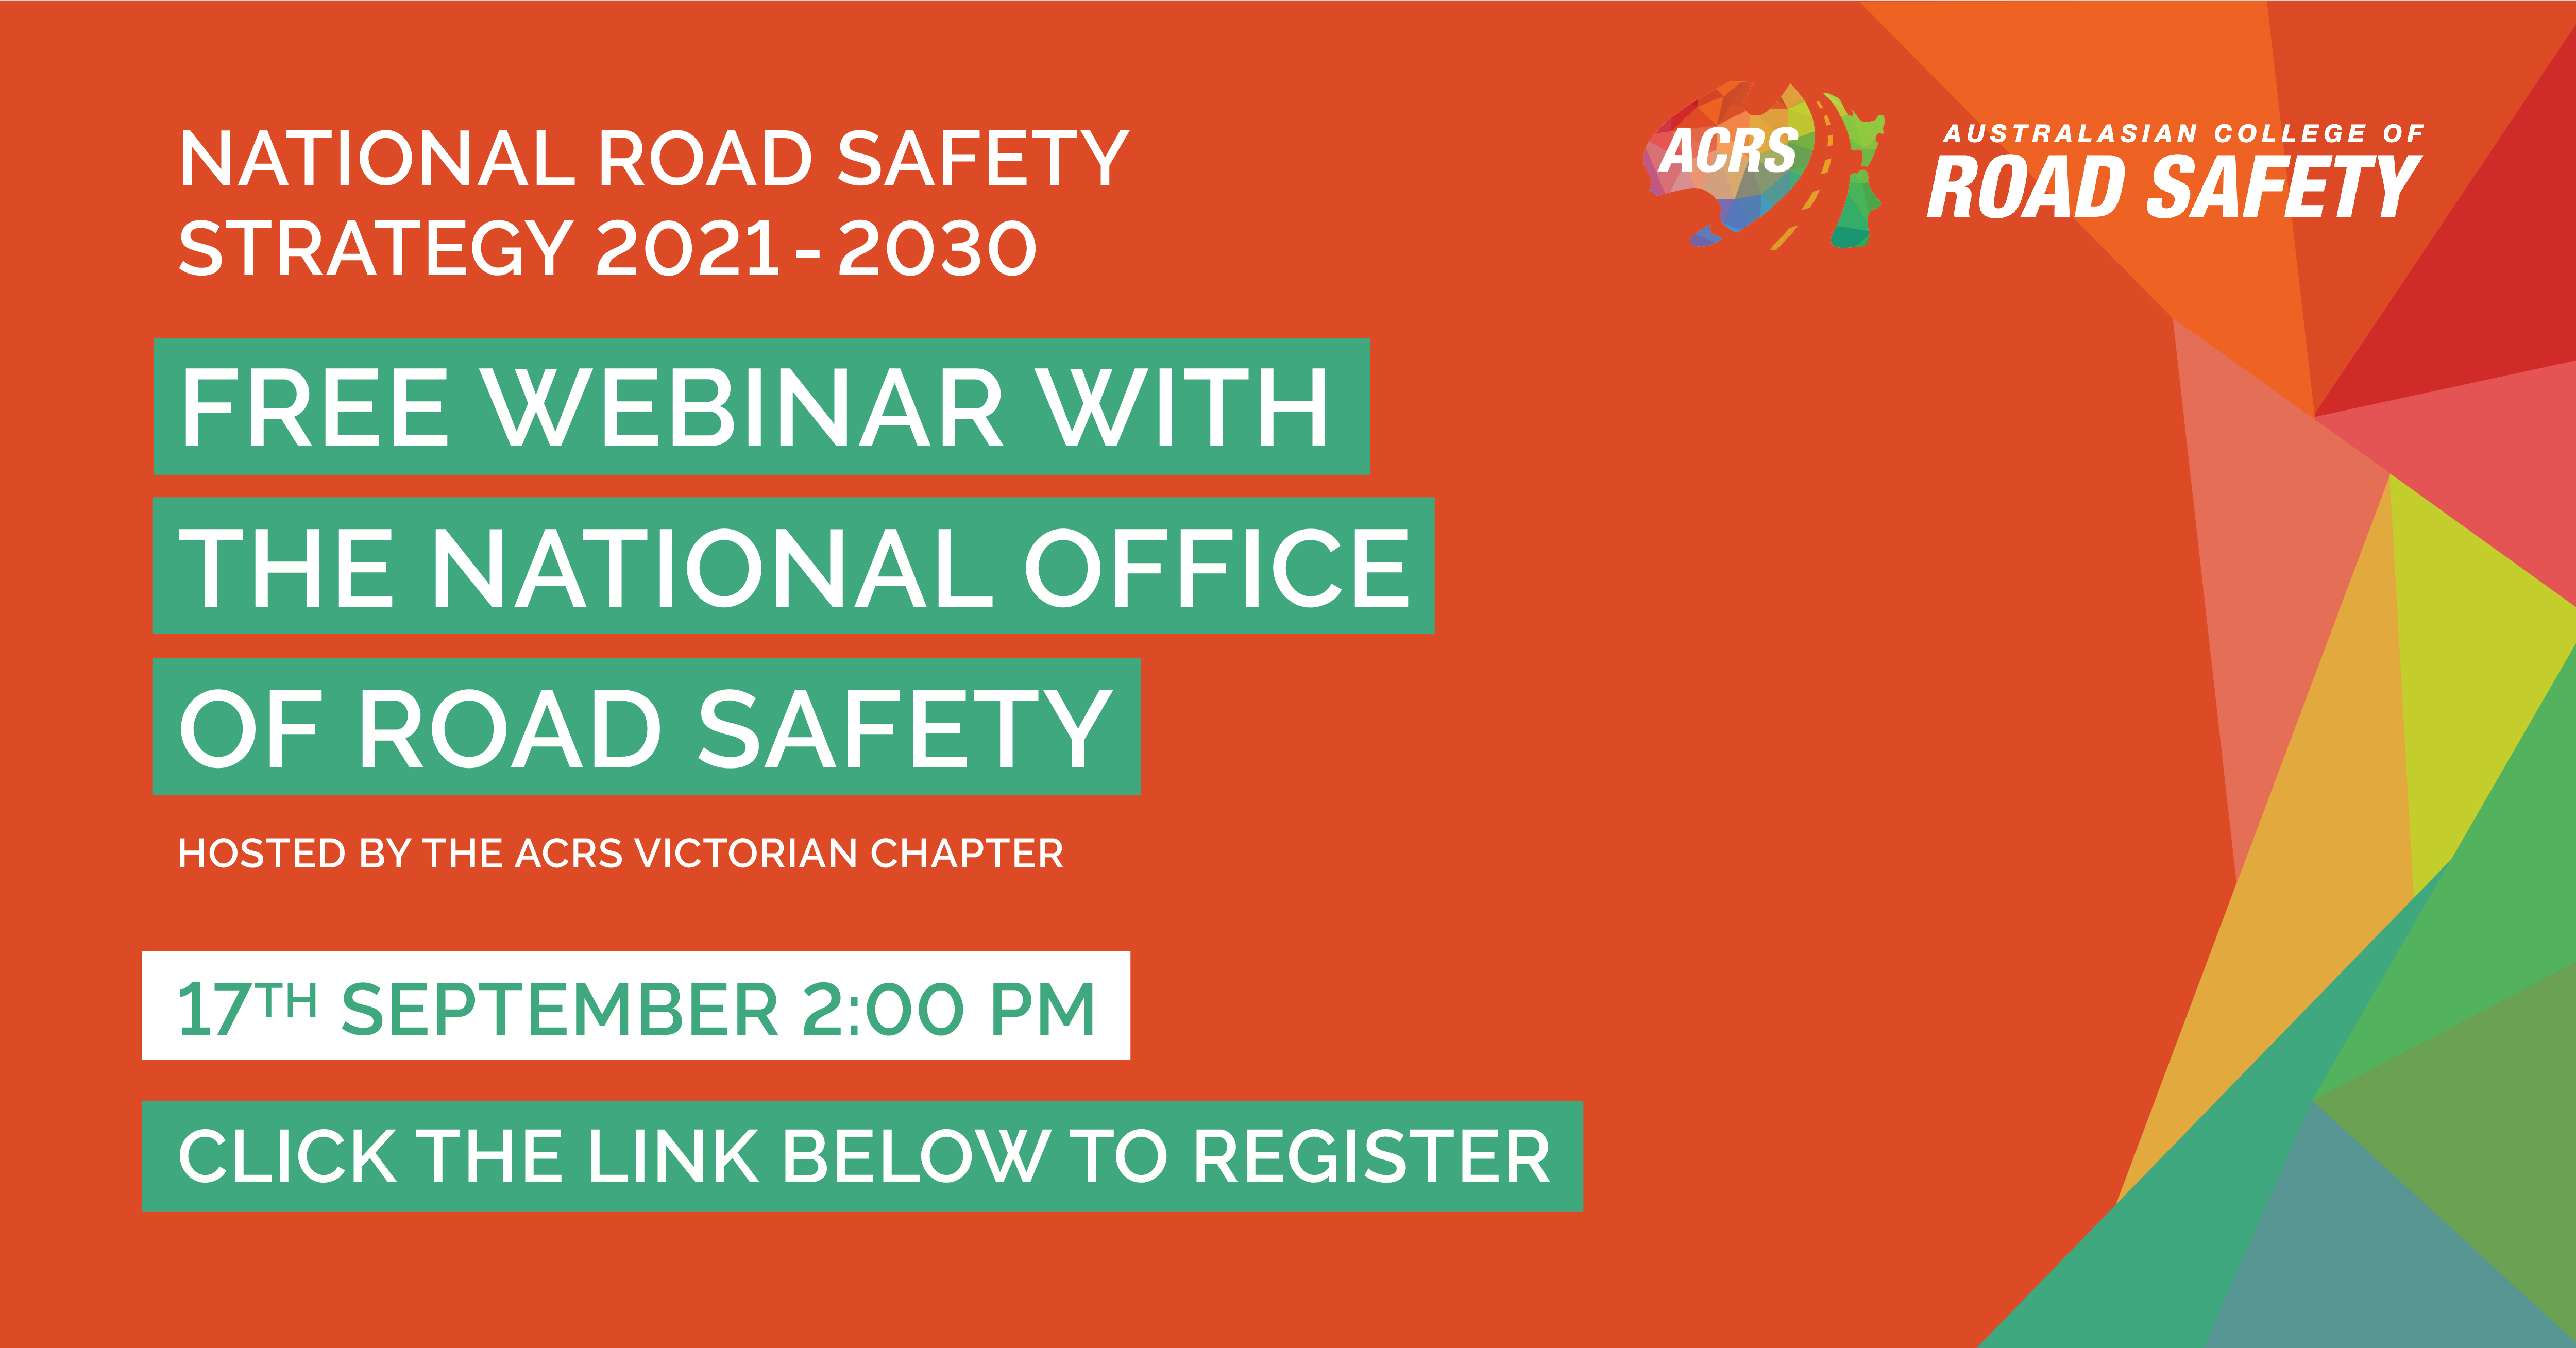 ACRS Webinar: The new National Road Safety Strategy 2021 to 2030 and the Social Model Approach